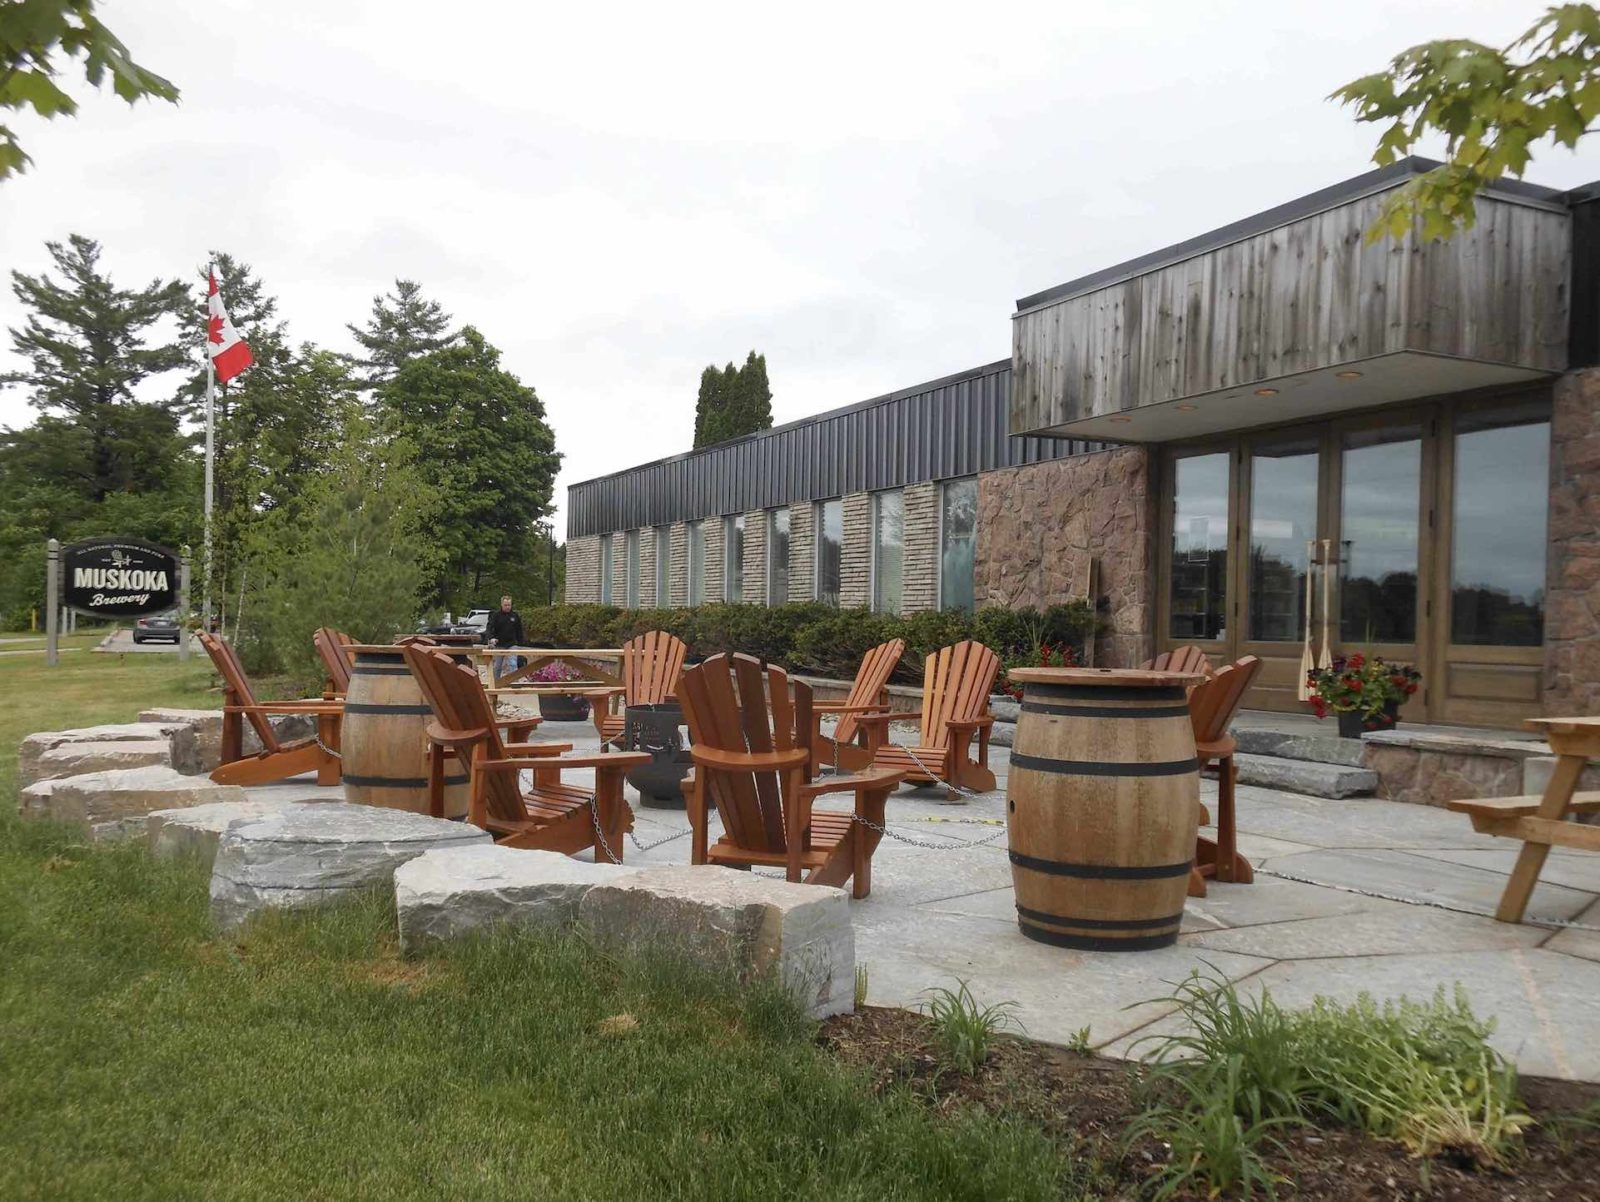 Muskoka Brewery outdoor patio